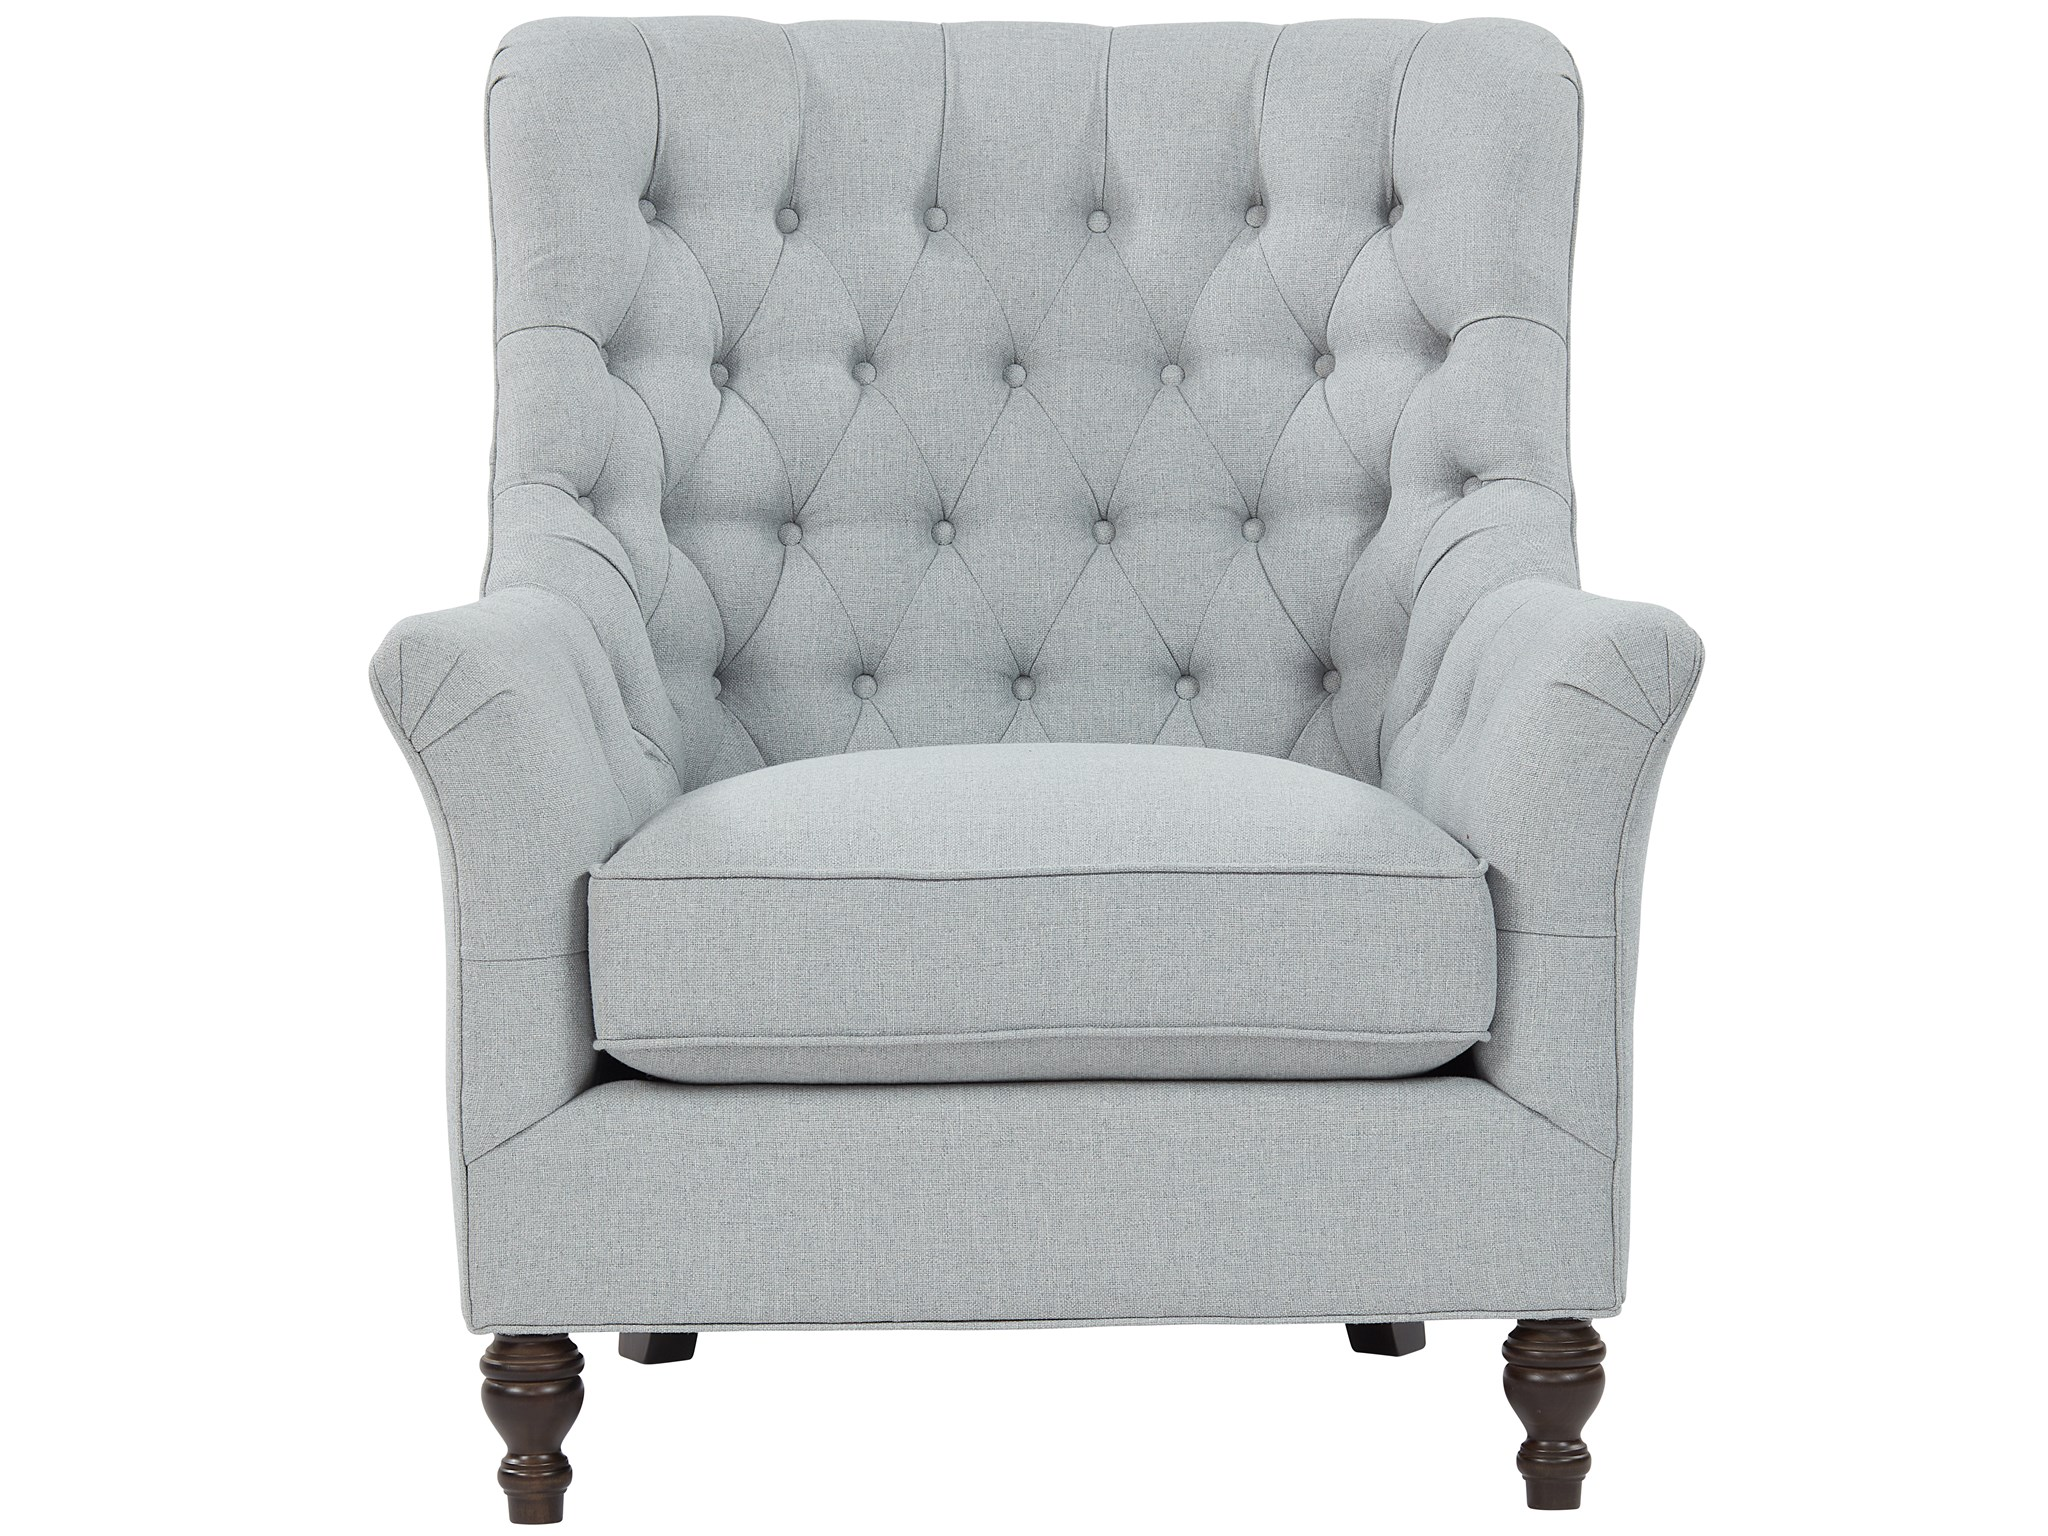 Janie Chair - Special Order